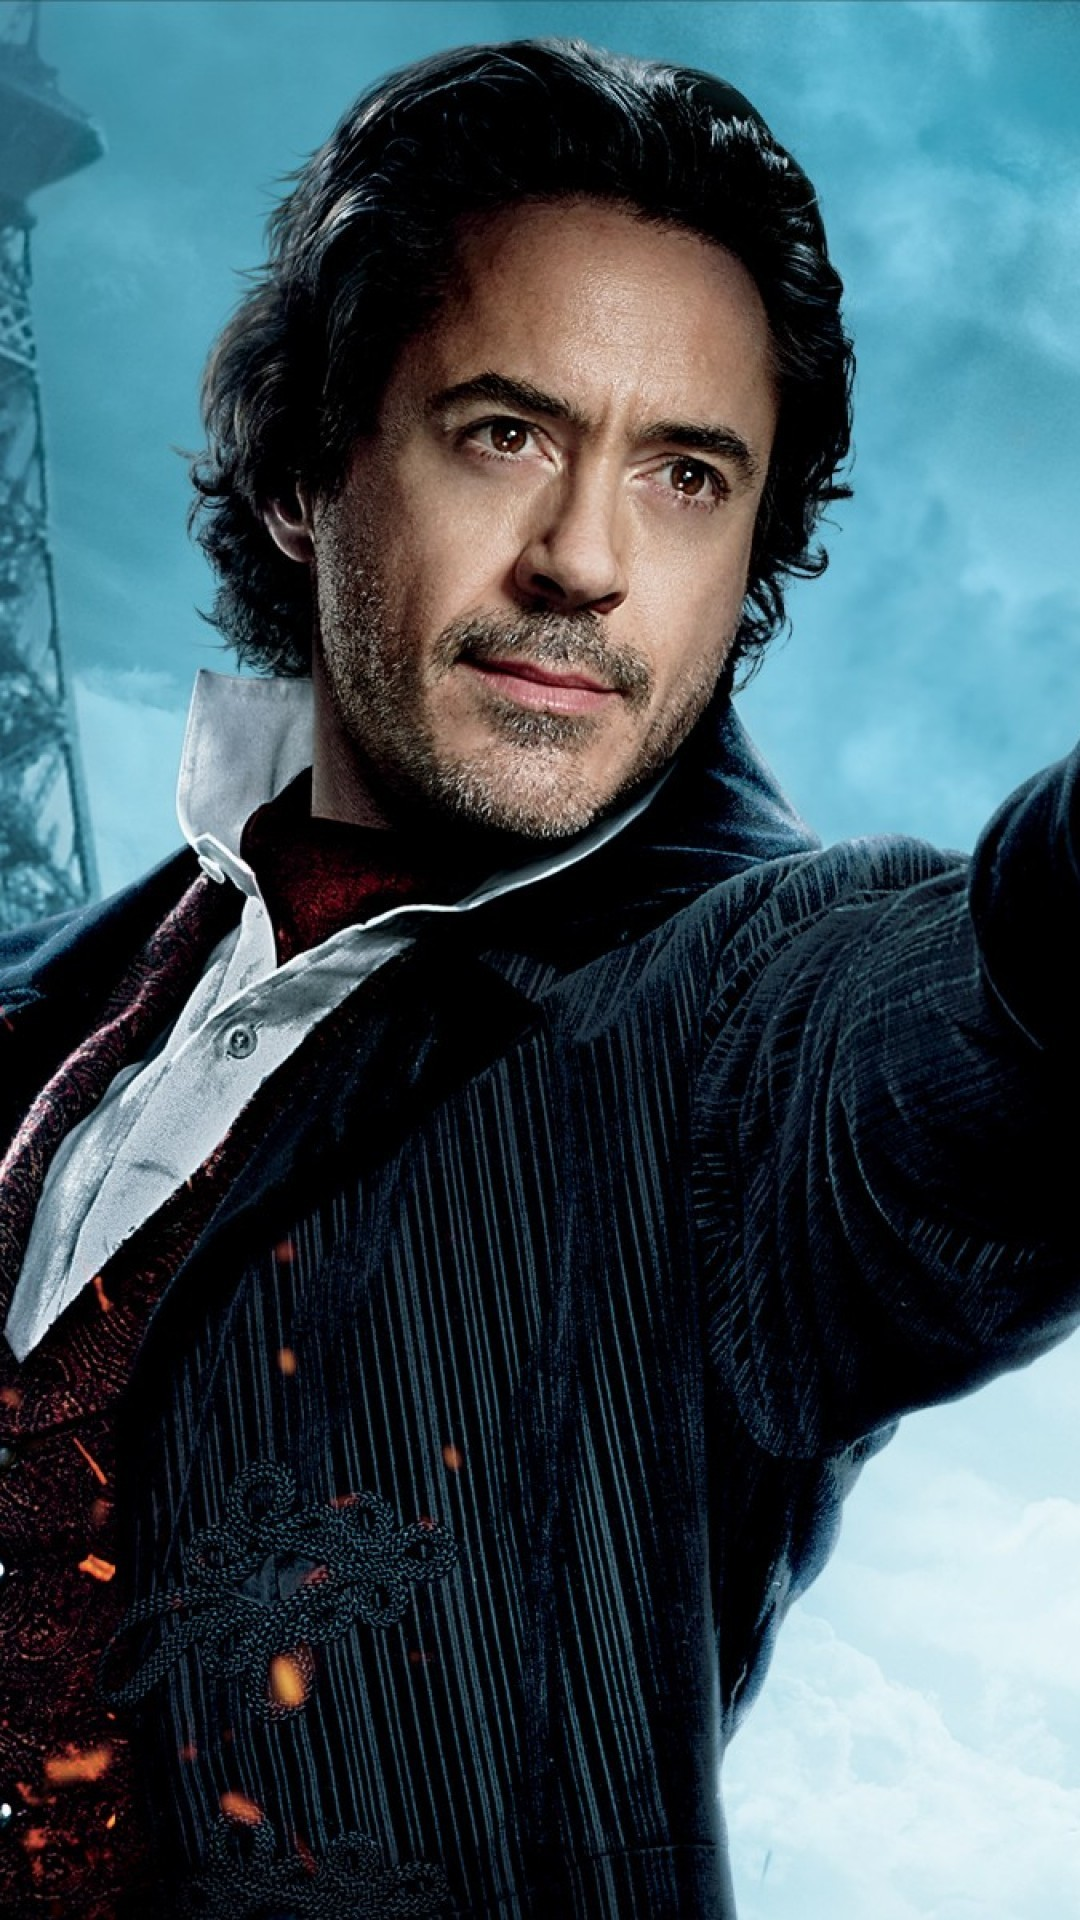 Robert Downey Jr Sherlock Holmes Wallpapers 74 Background Pictures